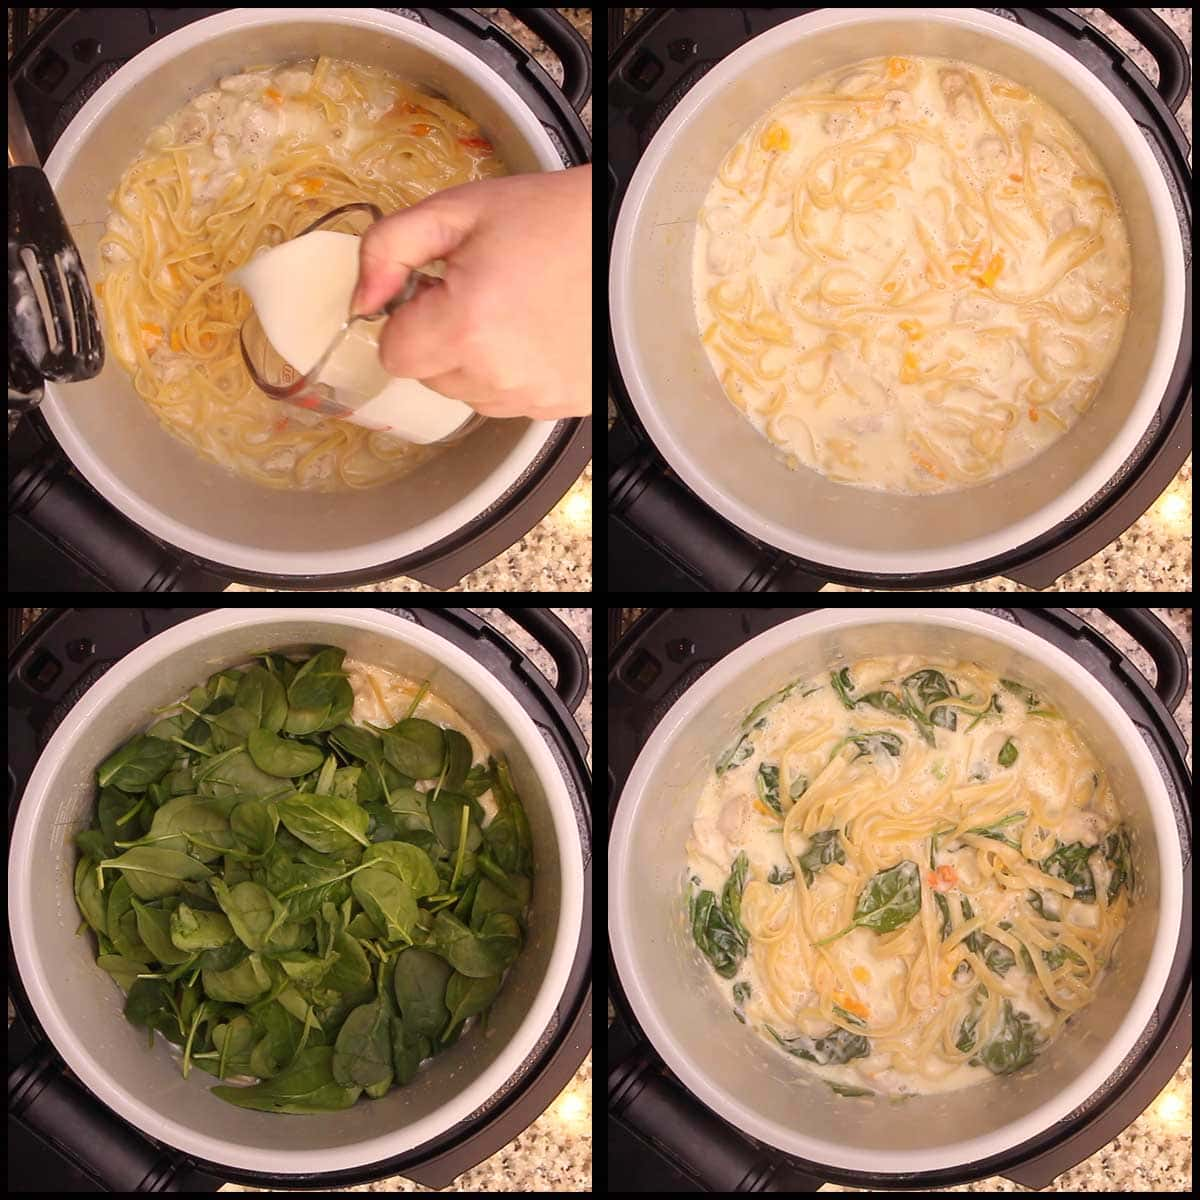 mixing in the cream and spinach